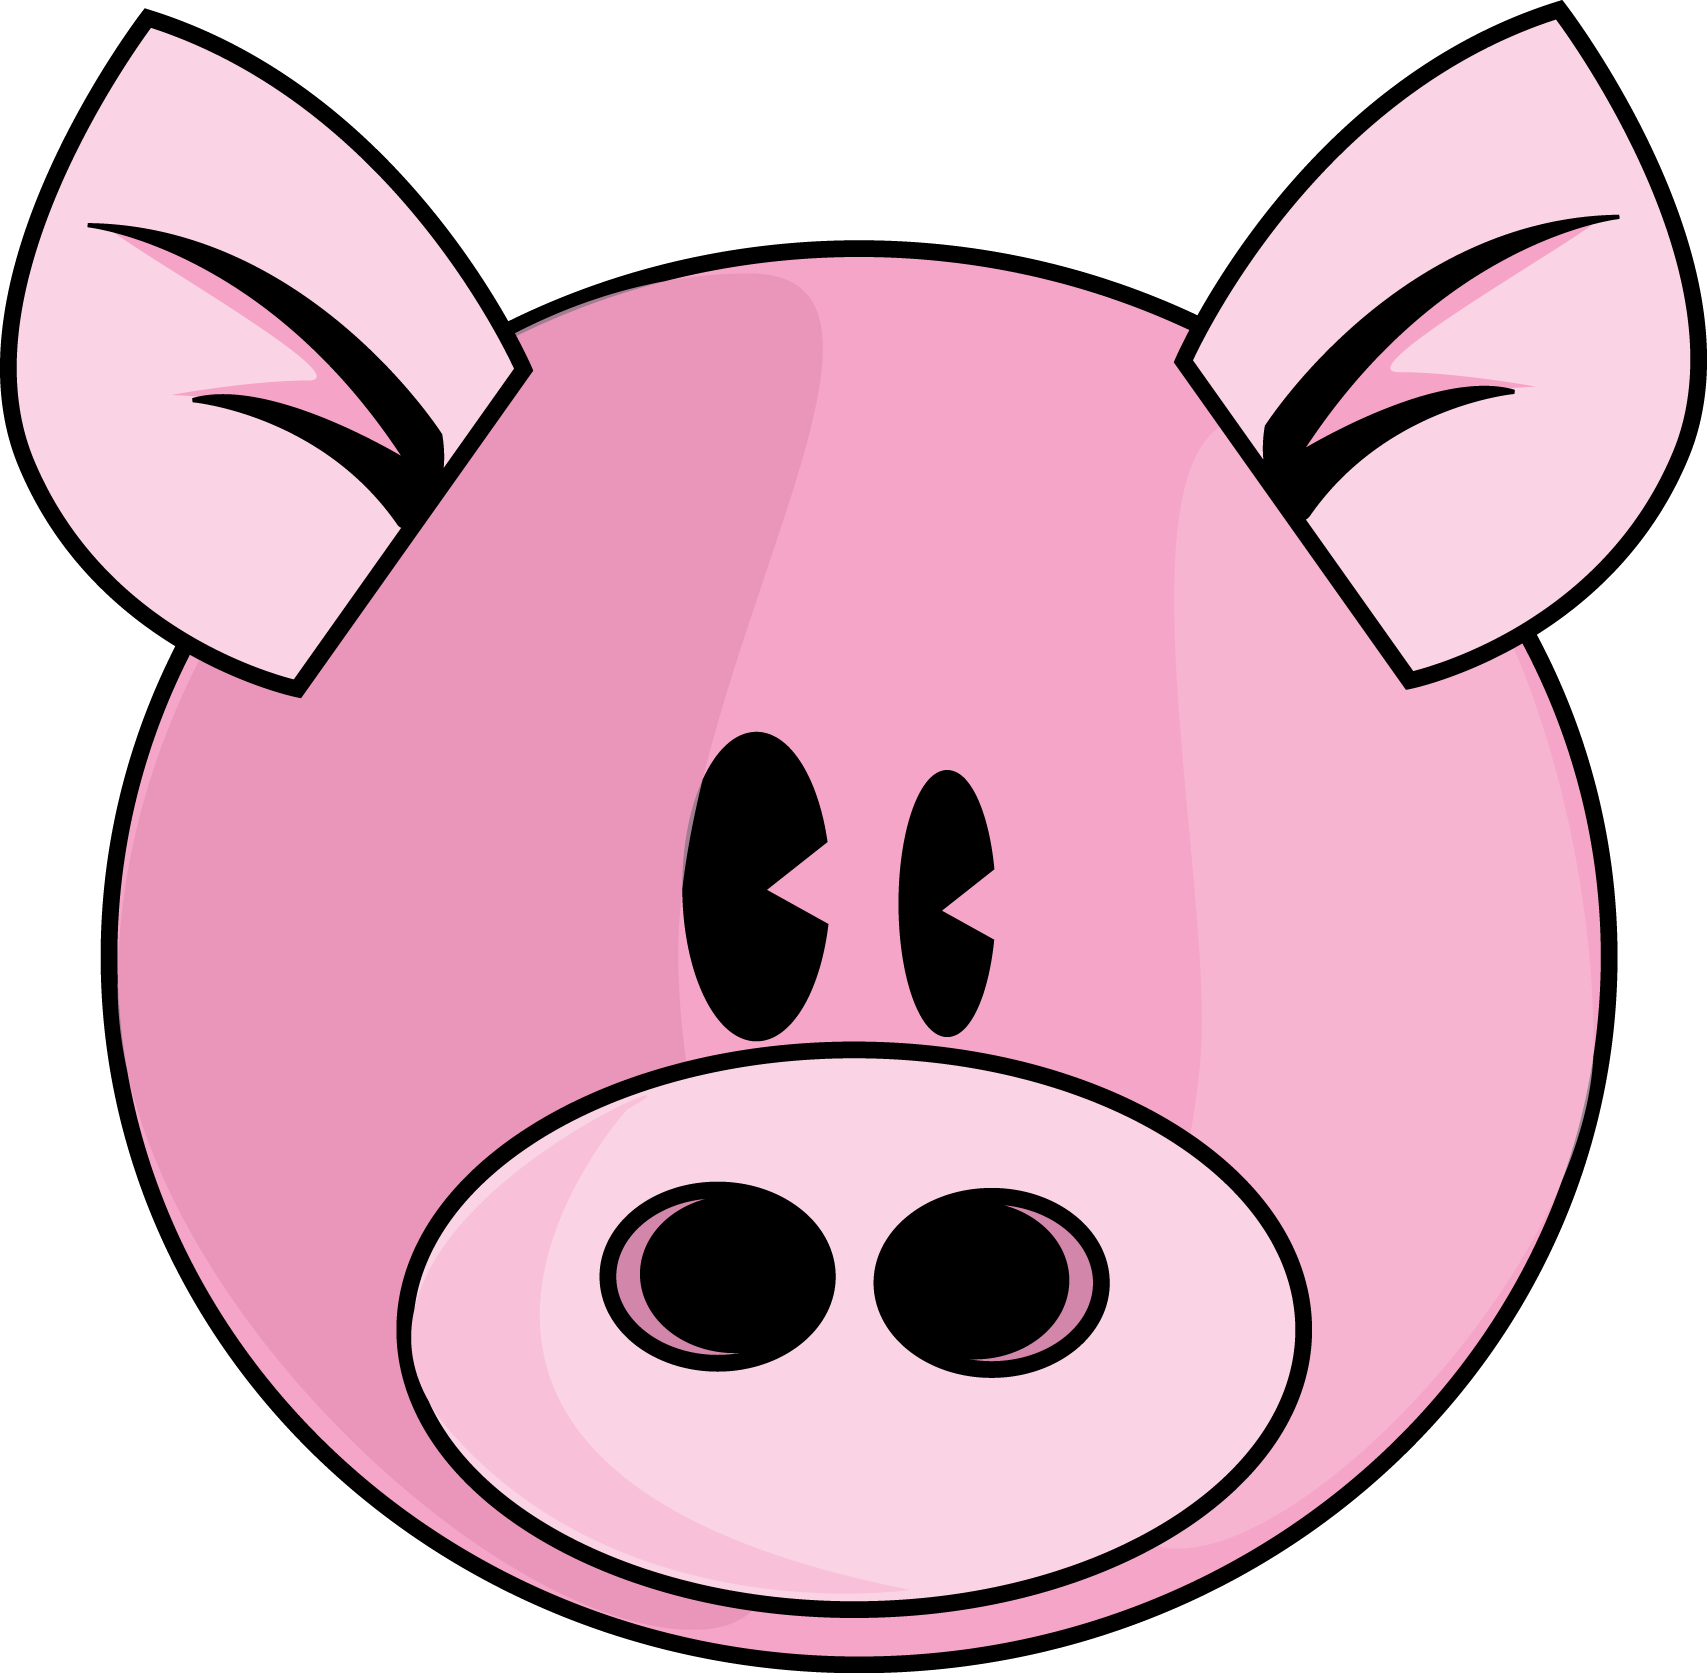 Pigs Drawing at GetDrawings.com | Free for personal use Pigs Drawing ...